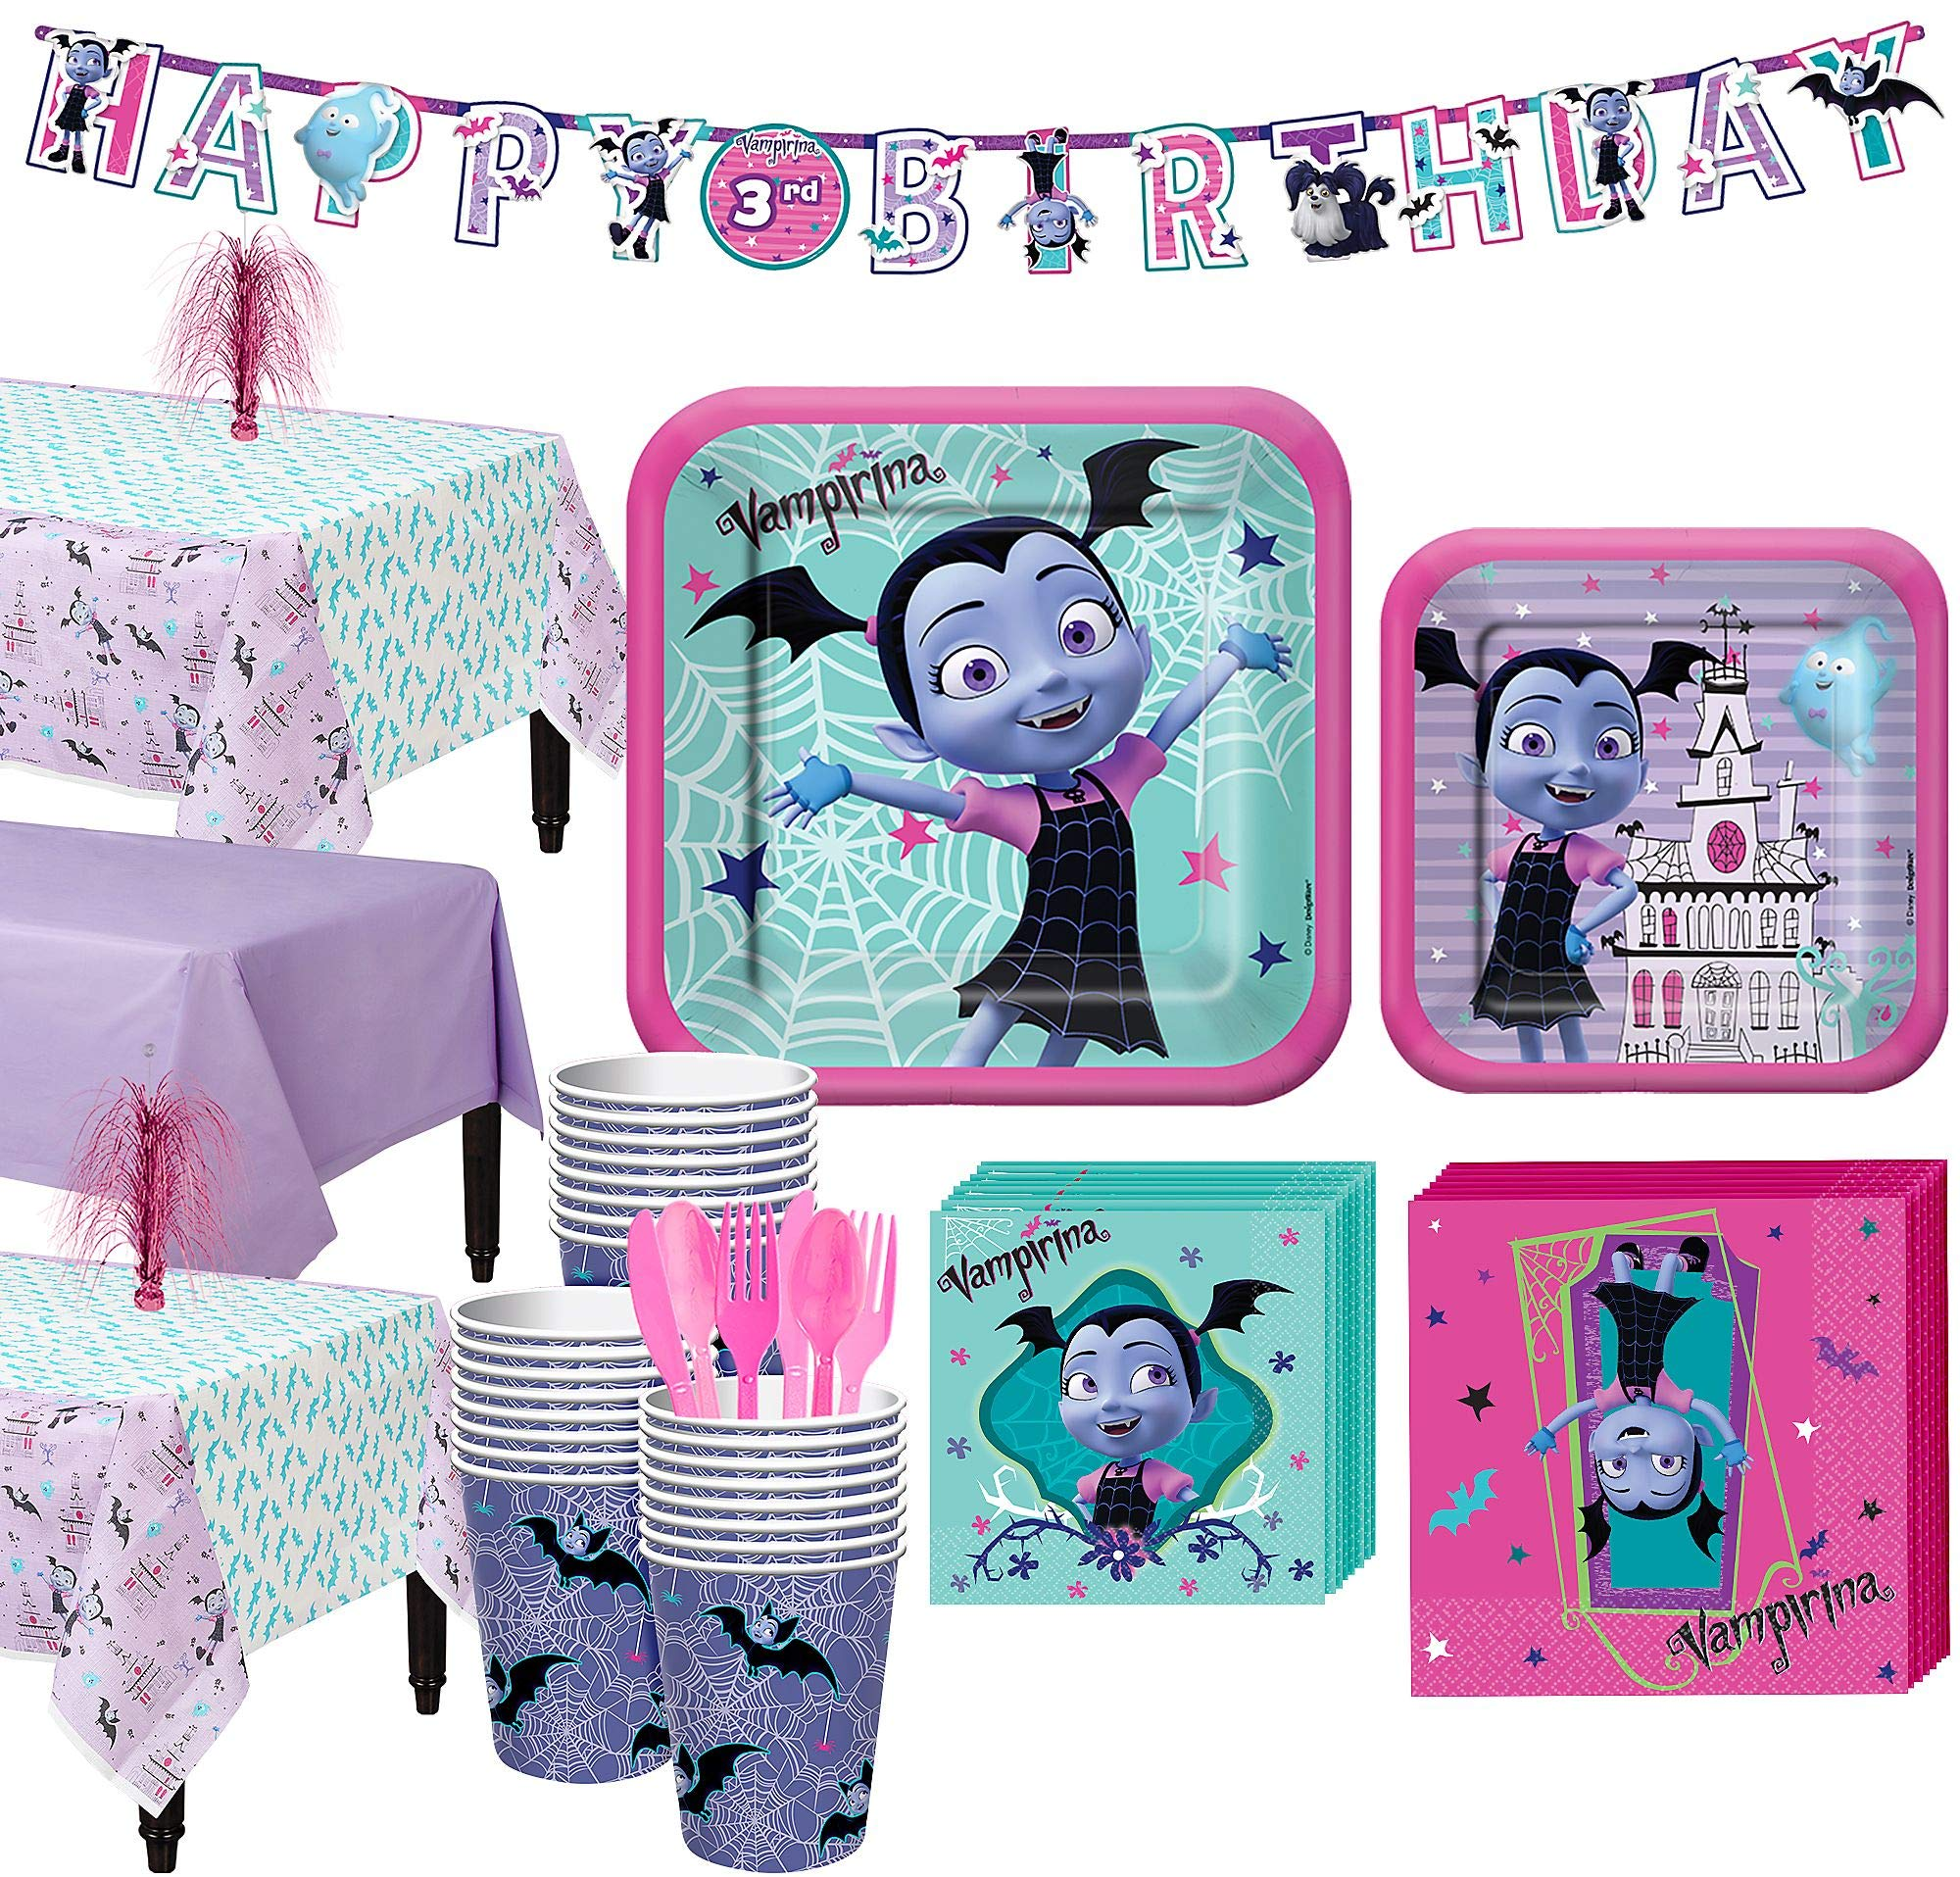 Party City Vampirina Party Supplies, for 24 Guests, Include Plates, Napkins, Table Covers, a Banner, and Centerpieces by Party City